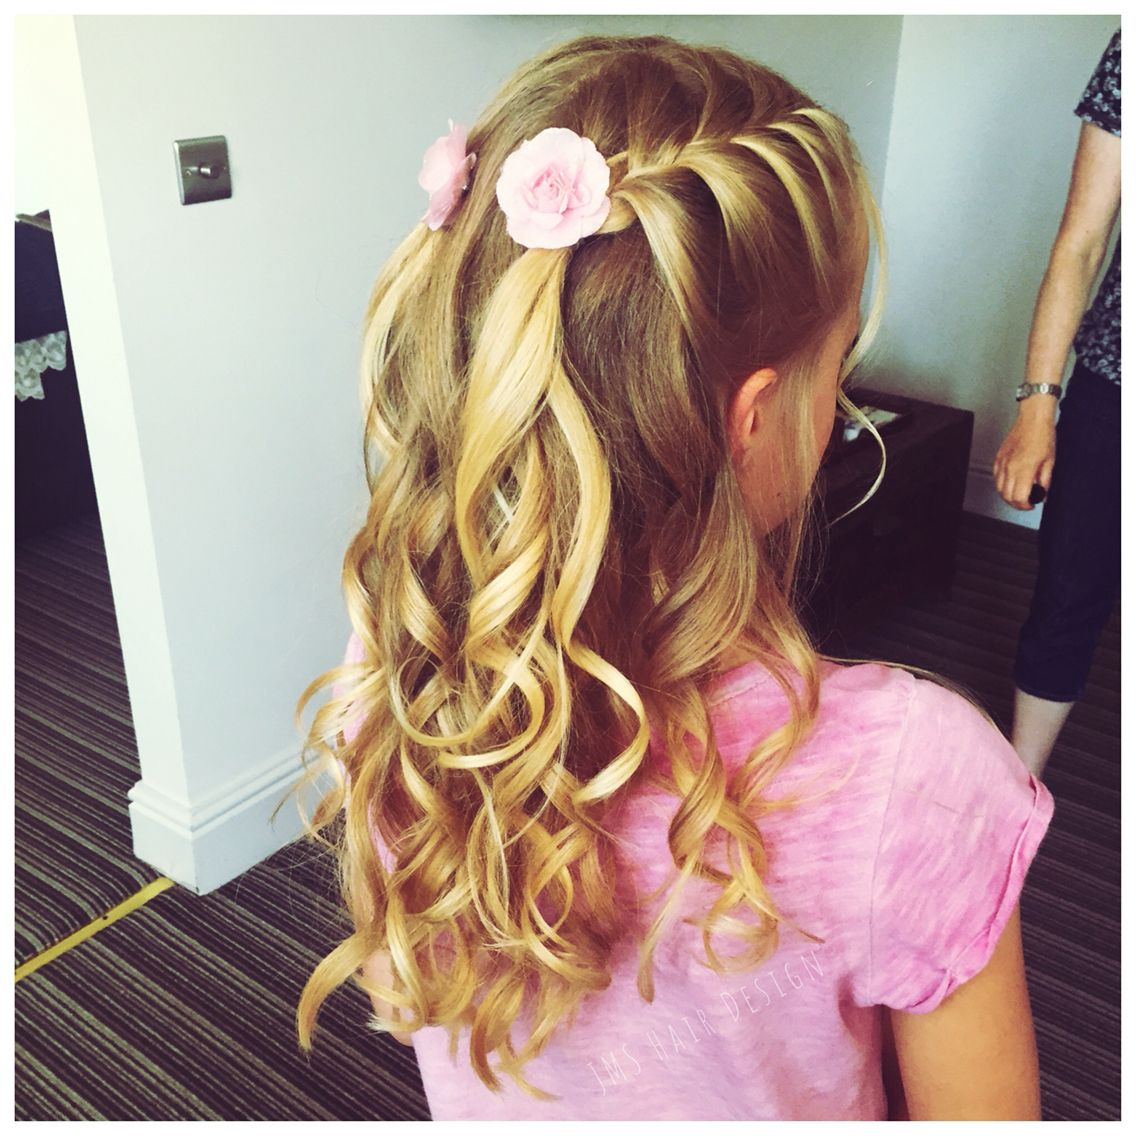 Idée Coiffure Facile Petite Fille Flower Girl Twin French Plaits On Either Side With Curls